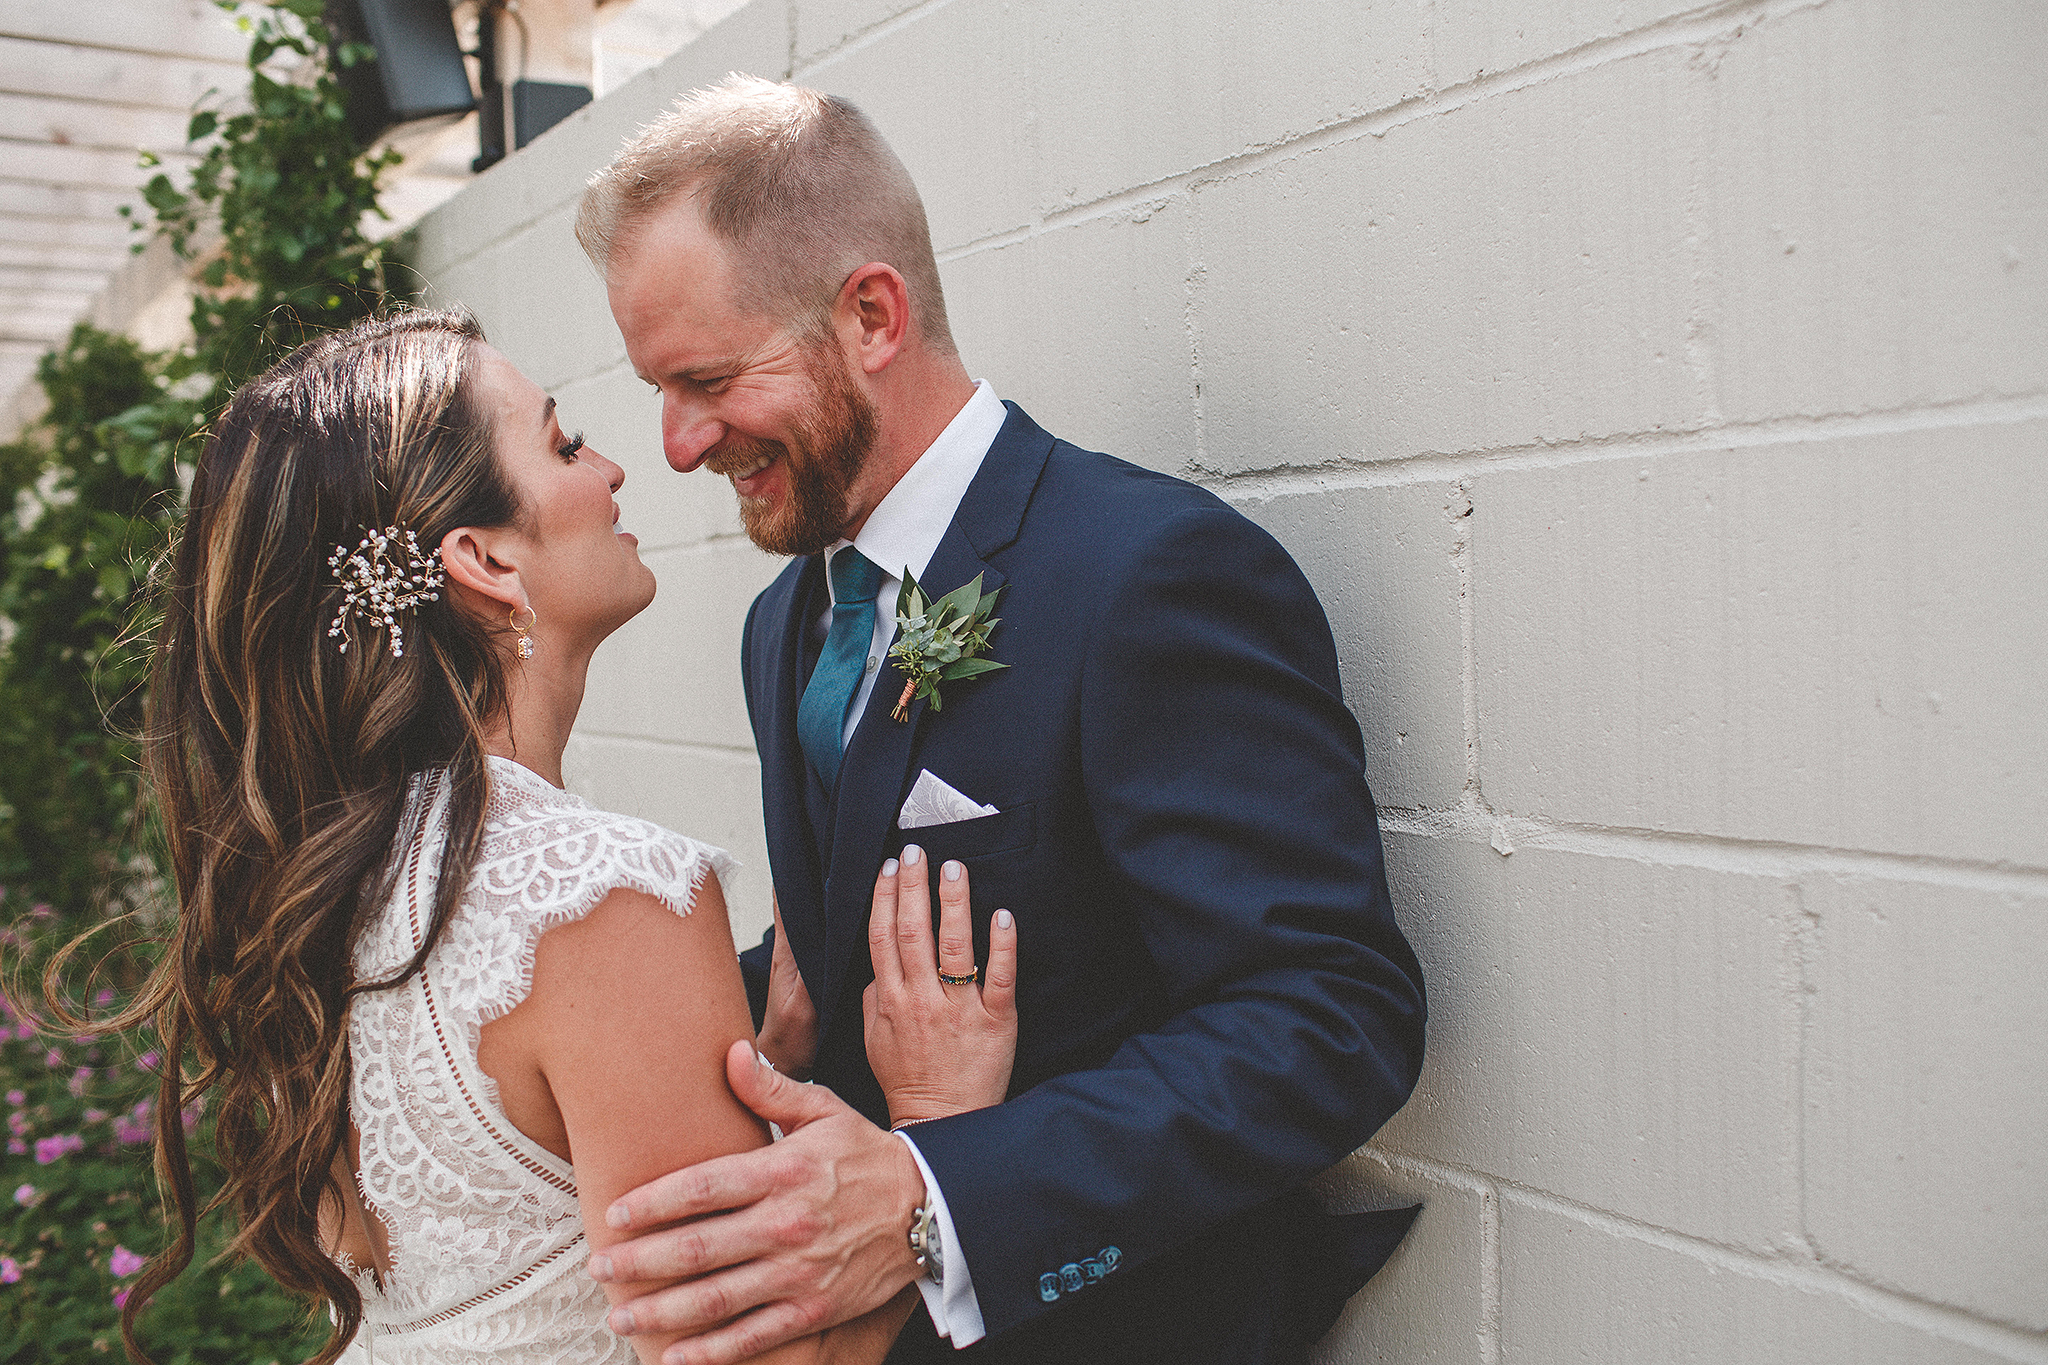 bride/groom candid laughing picture | the ivy house milwaukee wedding photographer | chrissy deming